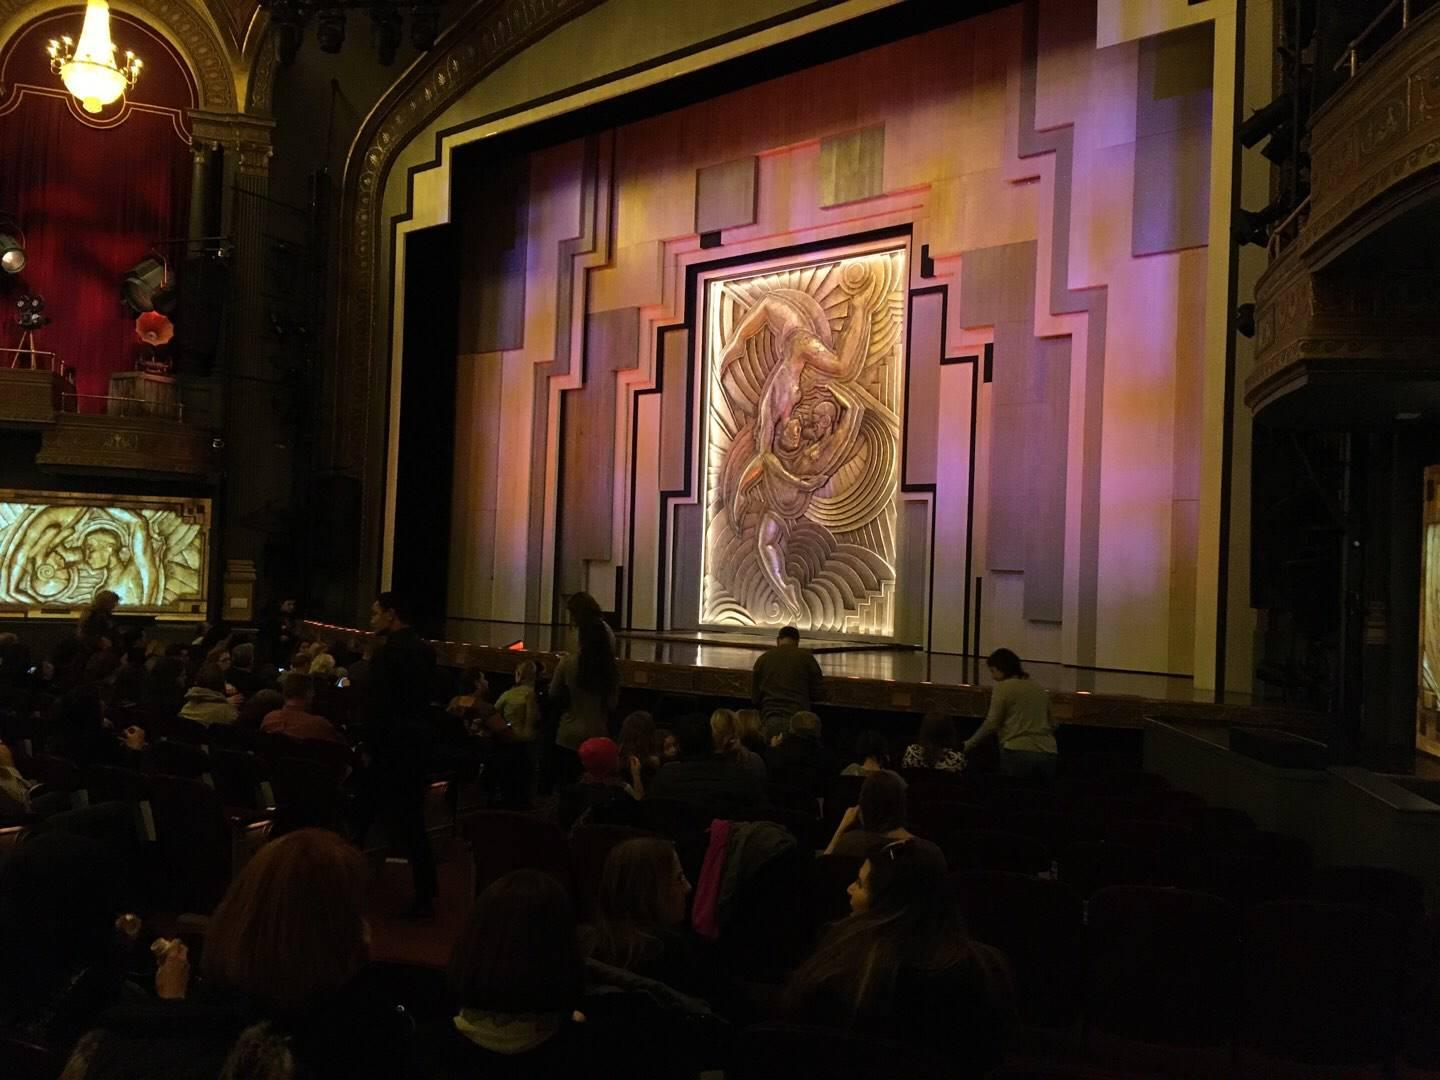 Lyric Theatre Section Orch Right Row M Seat 22